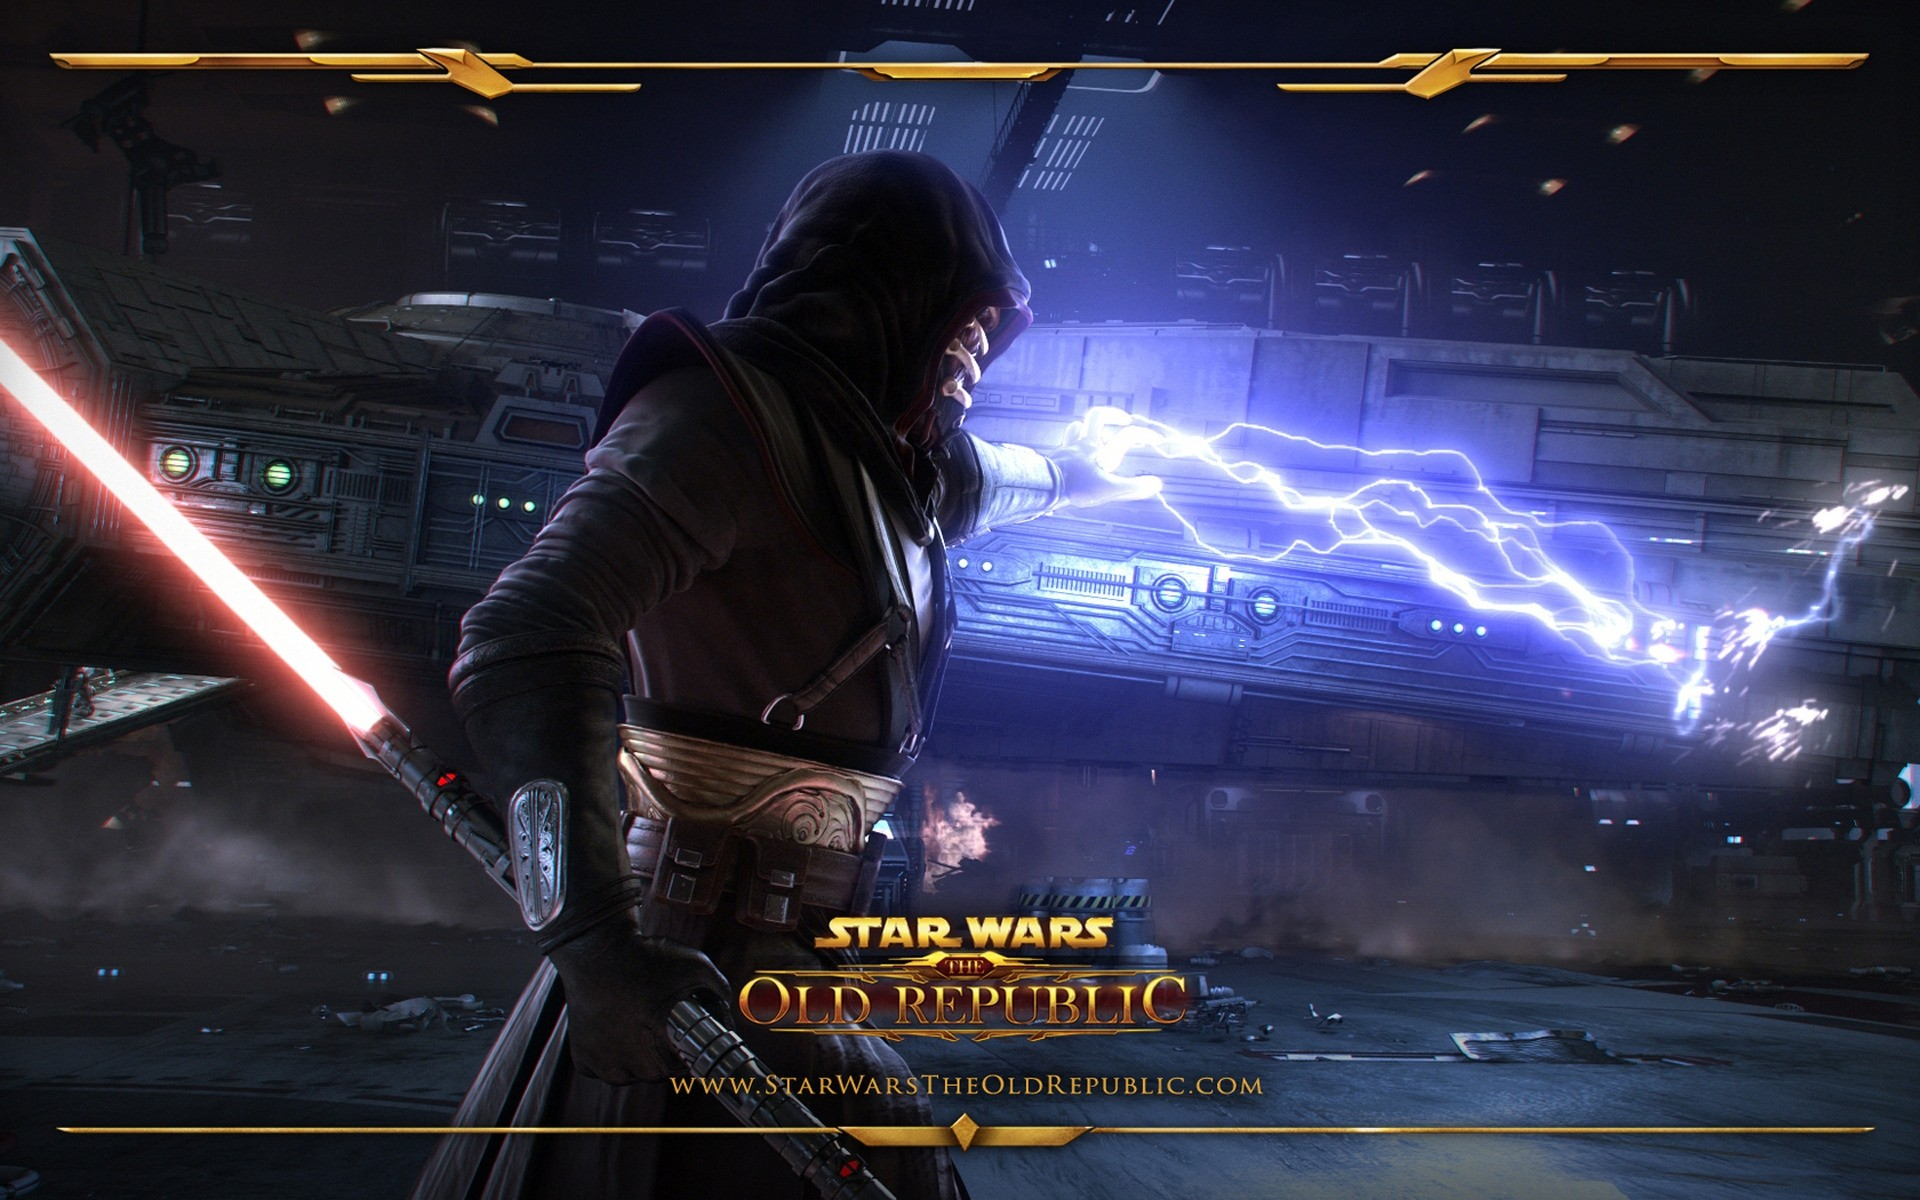 star wars the old republic. iphone wallpapers for free.